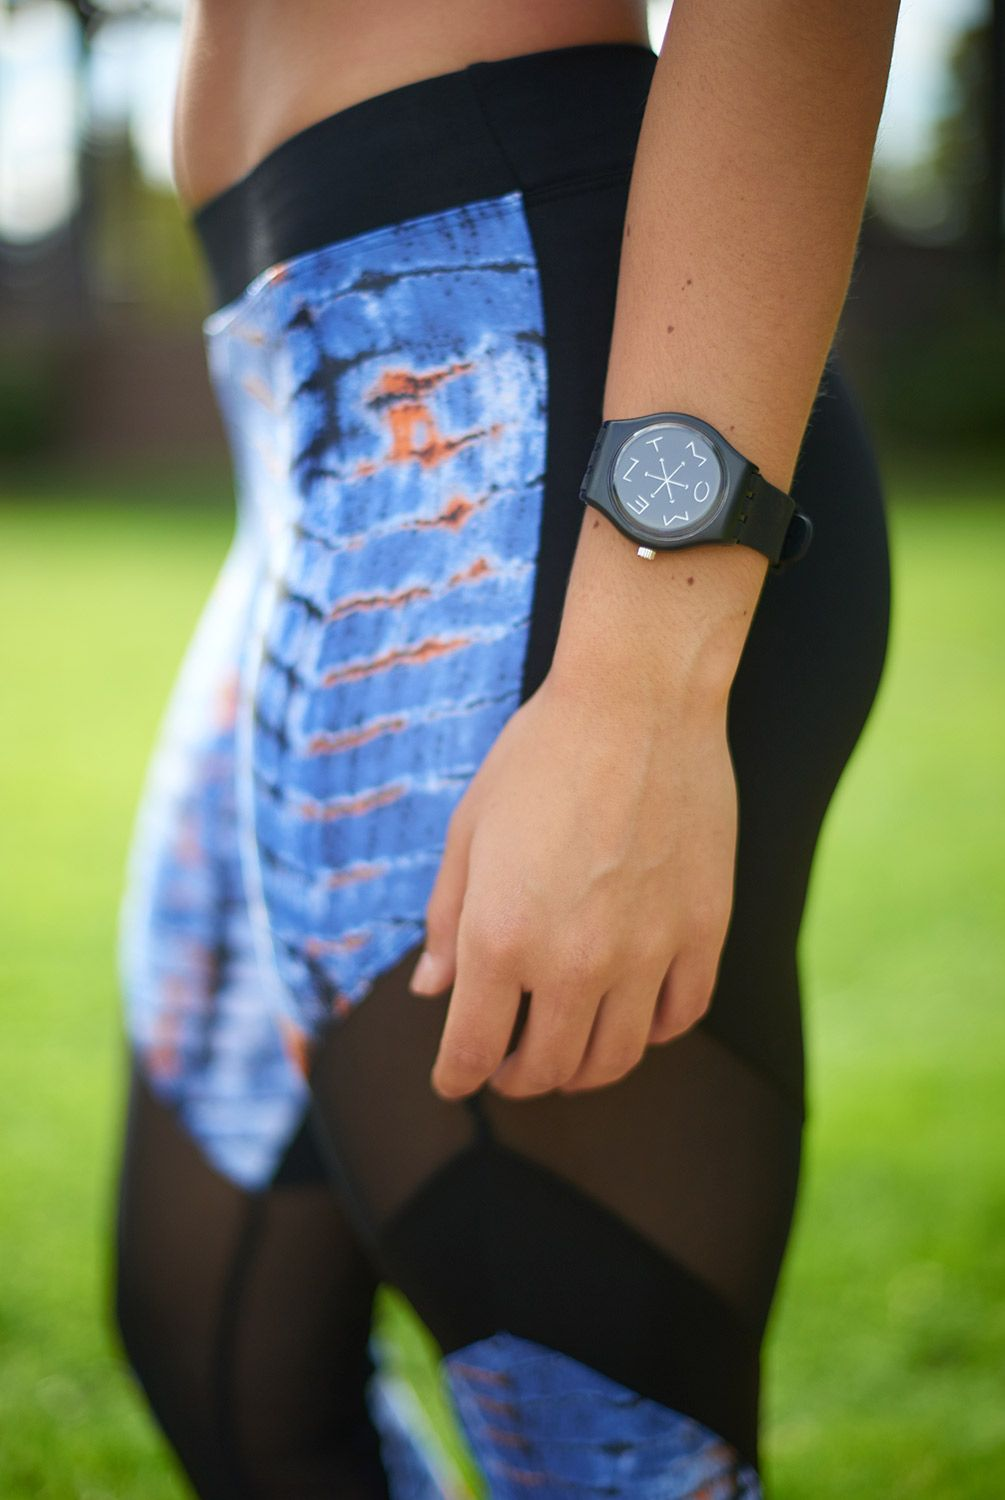 Steal Back Time watches help you know what time it is. Time to be in the moment! Stay present with this cool bracelet. (Leggings: Koral Activewear-Frame Legging) All available at evolvefitwear.com